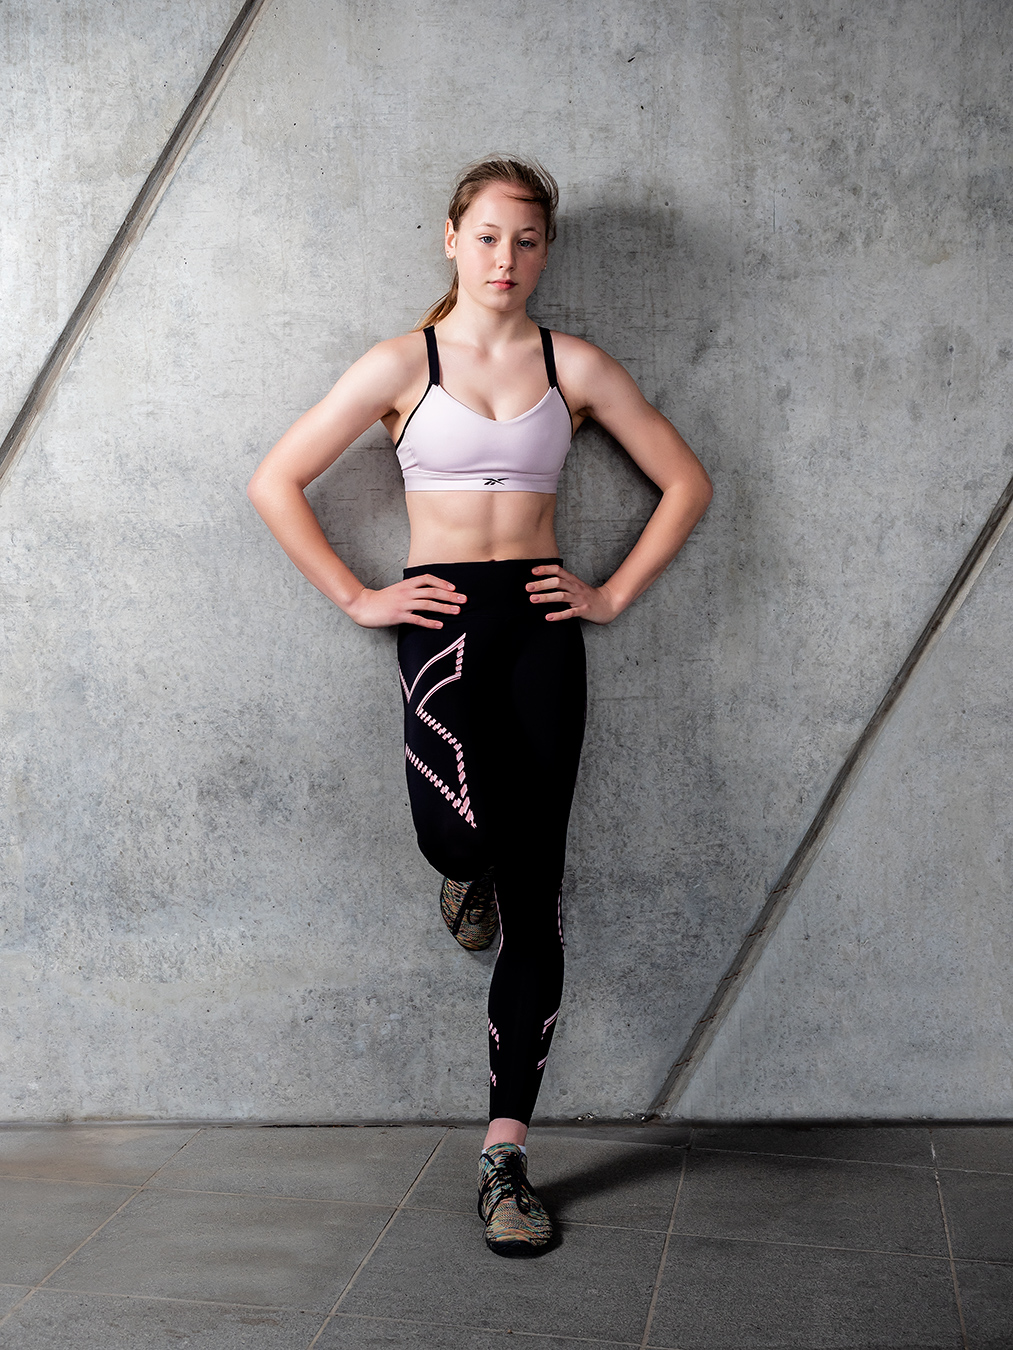 Melbournes Elite Fitness Teen Gymnast Alyssa during her Professional Fitness portfolio shoot